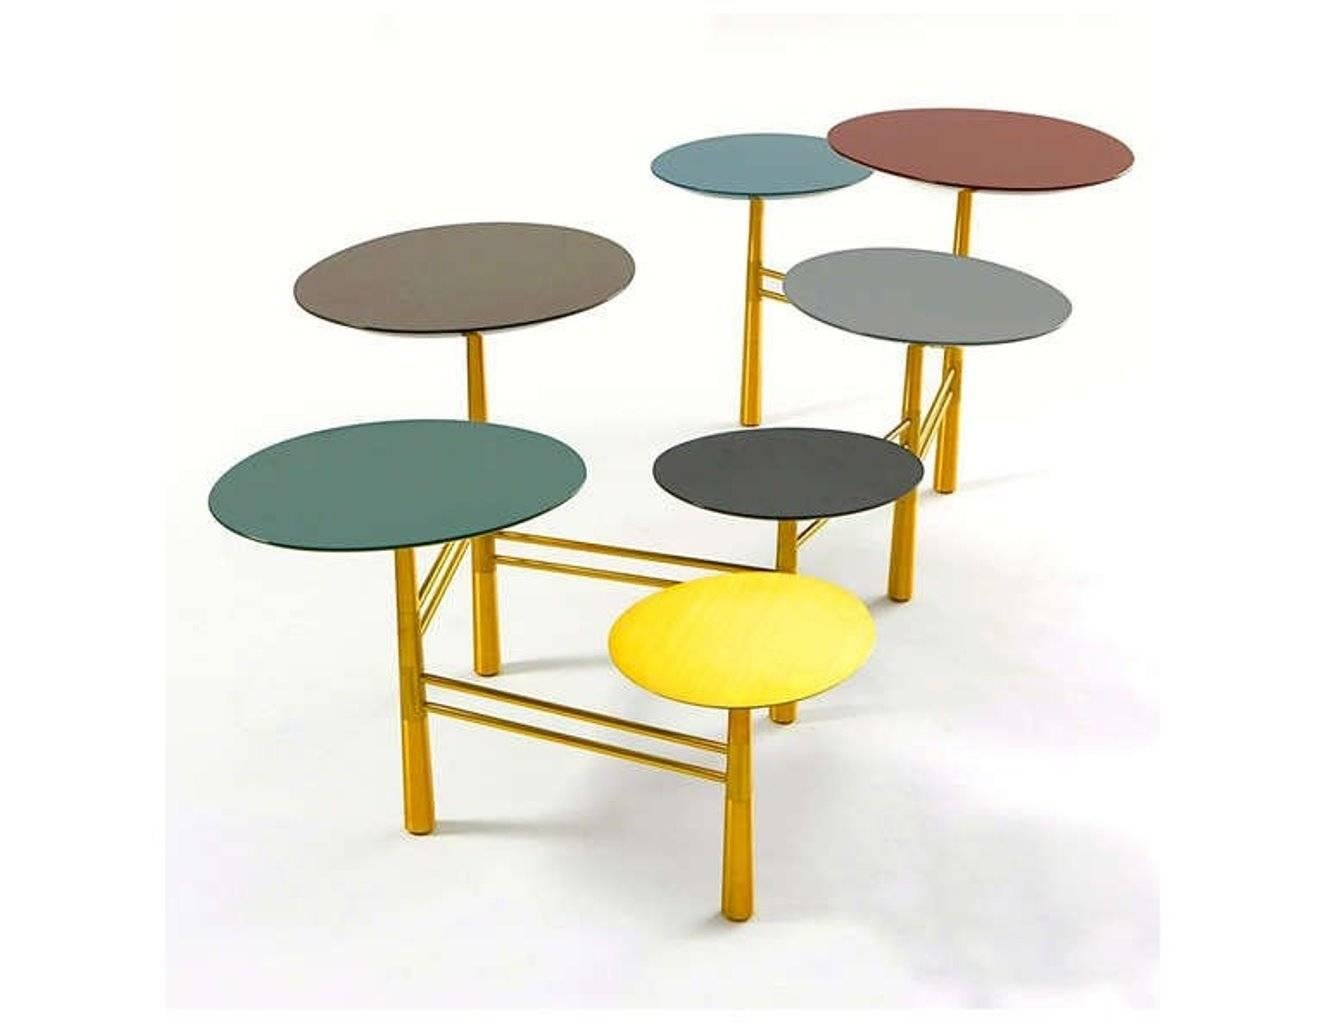 Tapis Du0027Orient Pebble Table By Nada Debs, Contemporary Coffee For Sale At  1stdibs